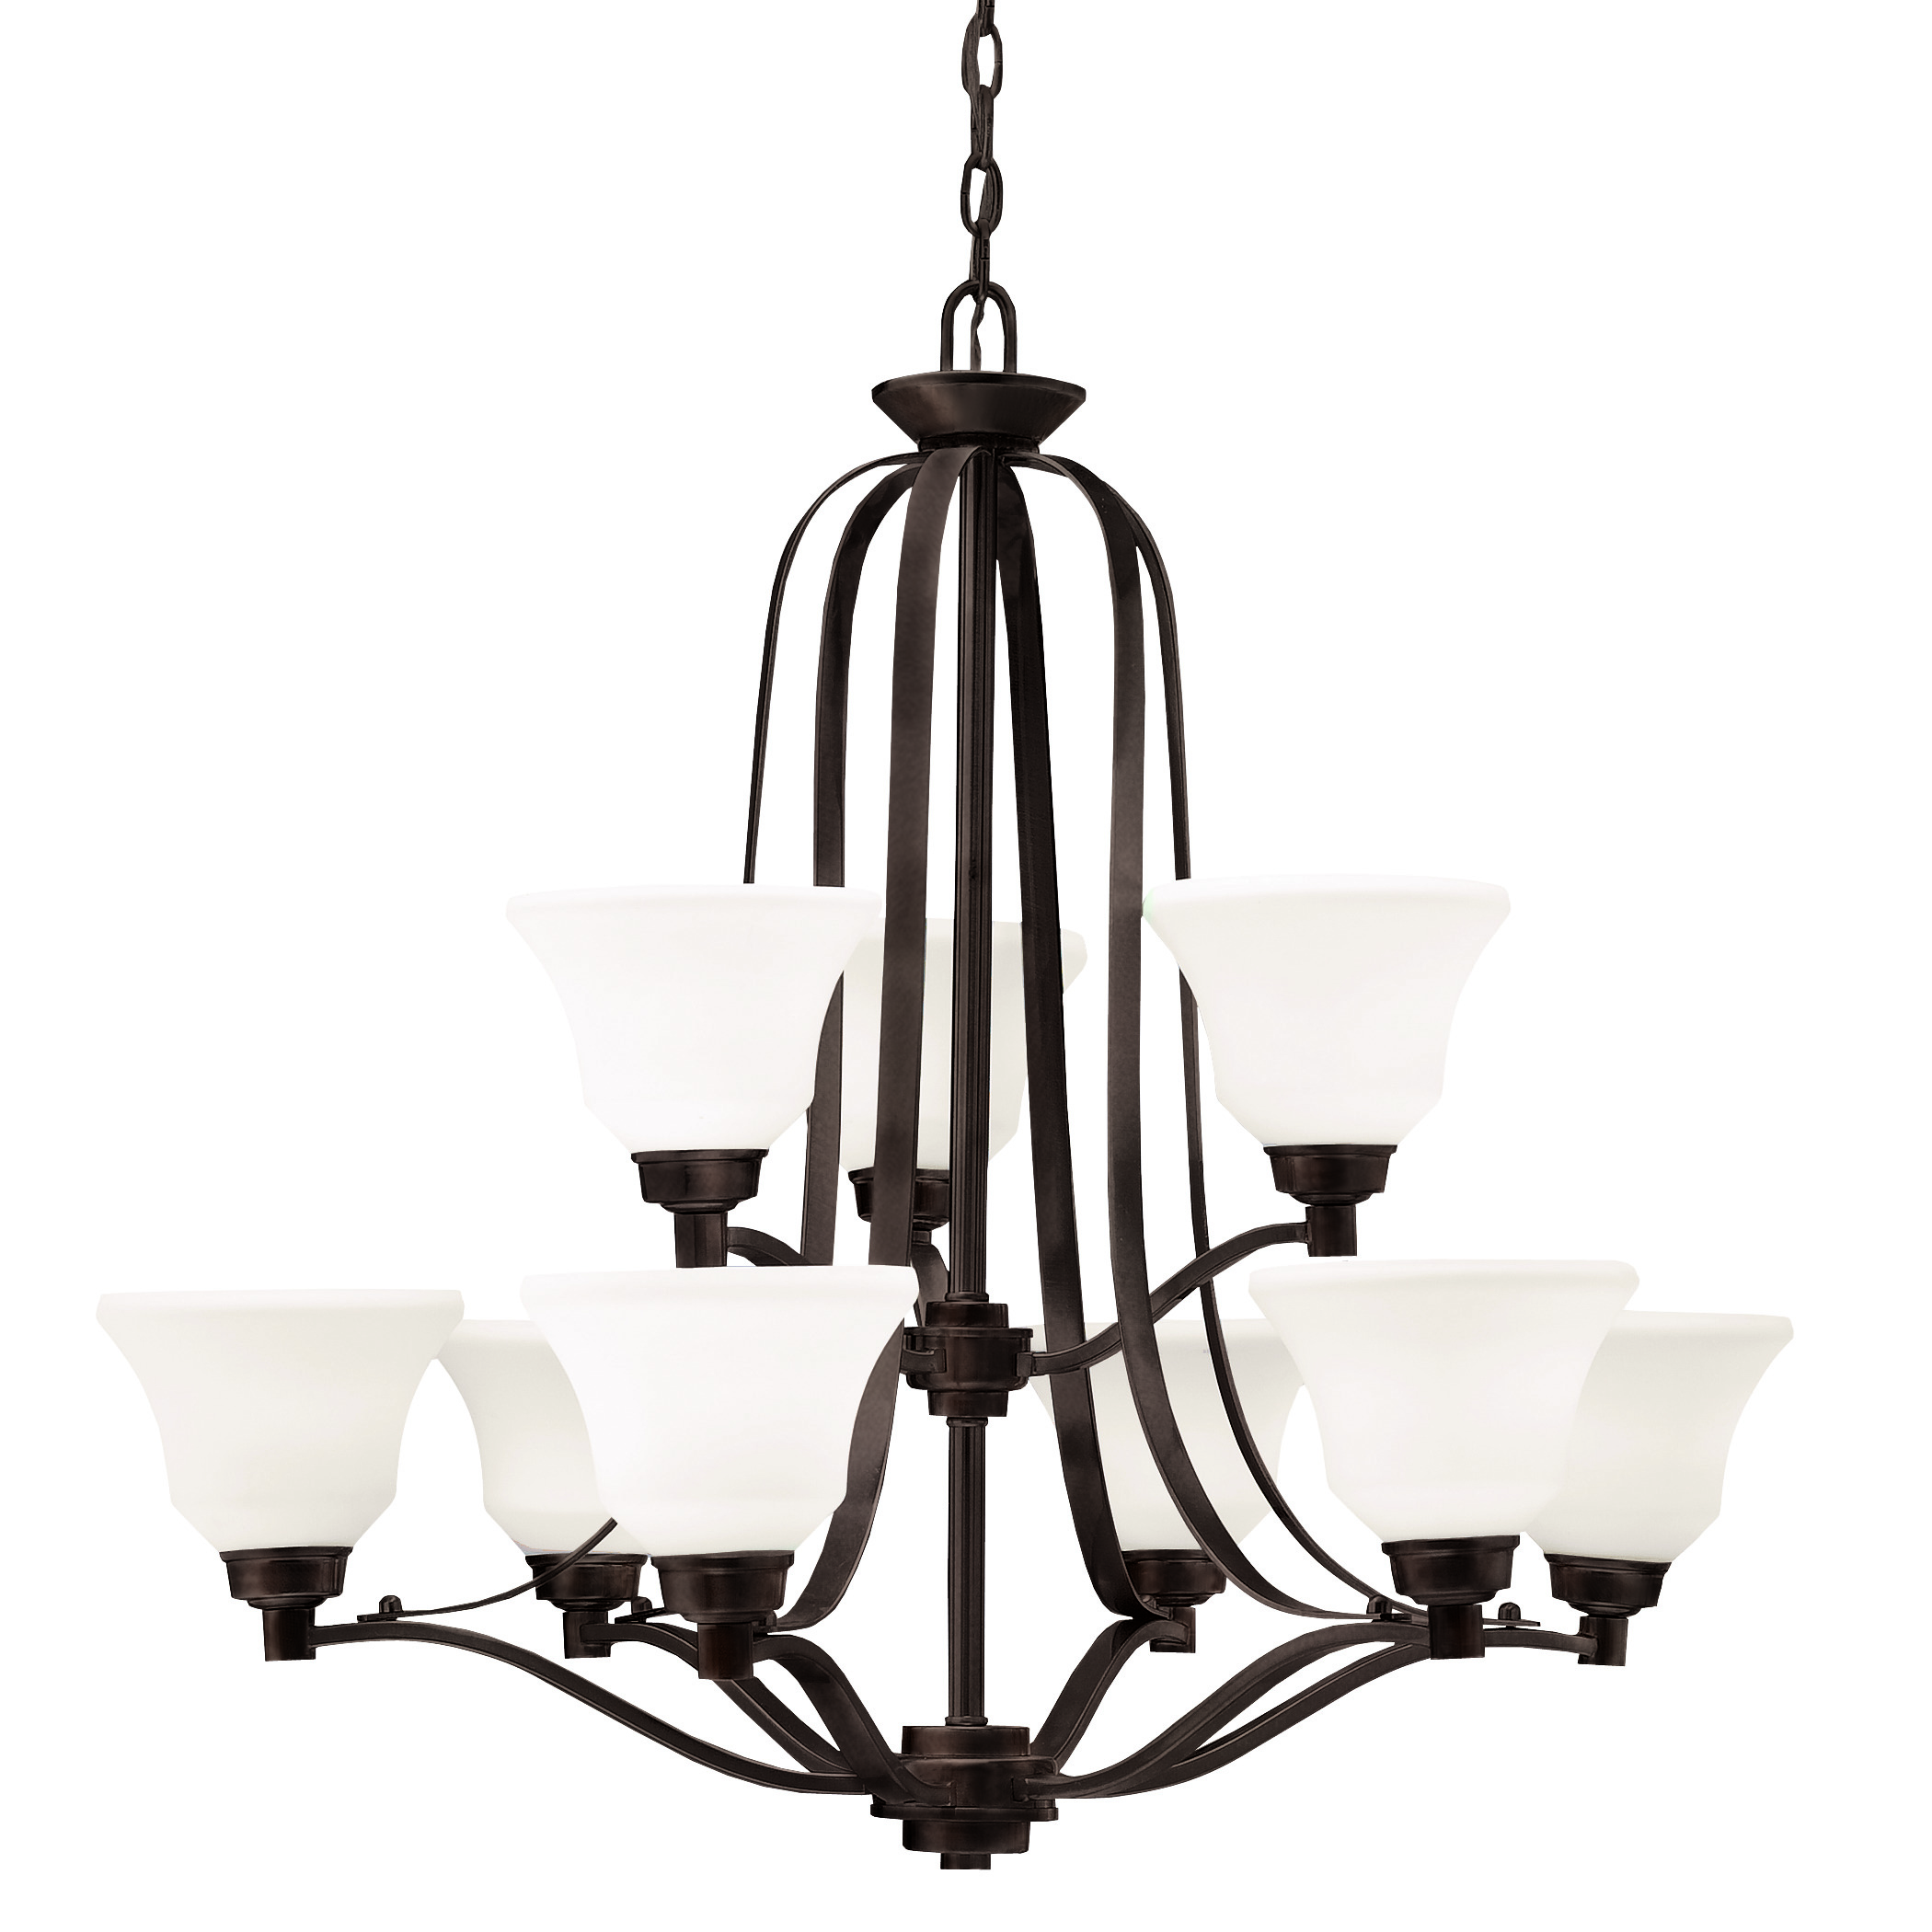 Kichler Langford LED Chandelier with Satin Etched White Shade - Olde Bronze (1784OZL16)